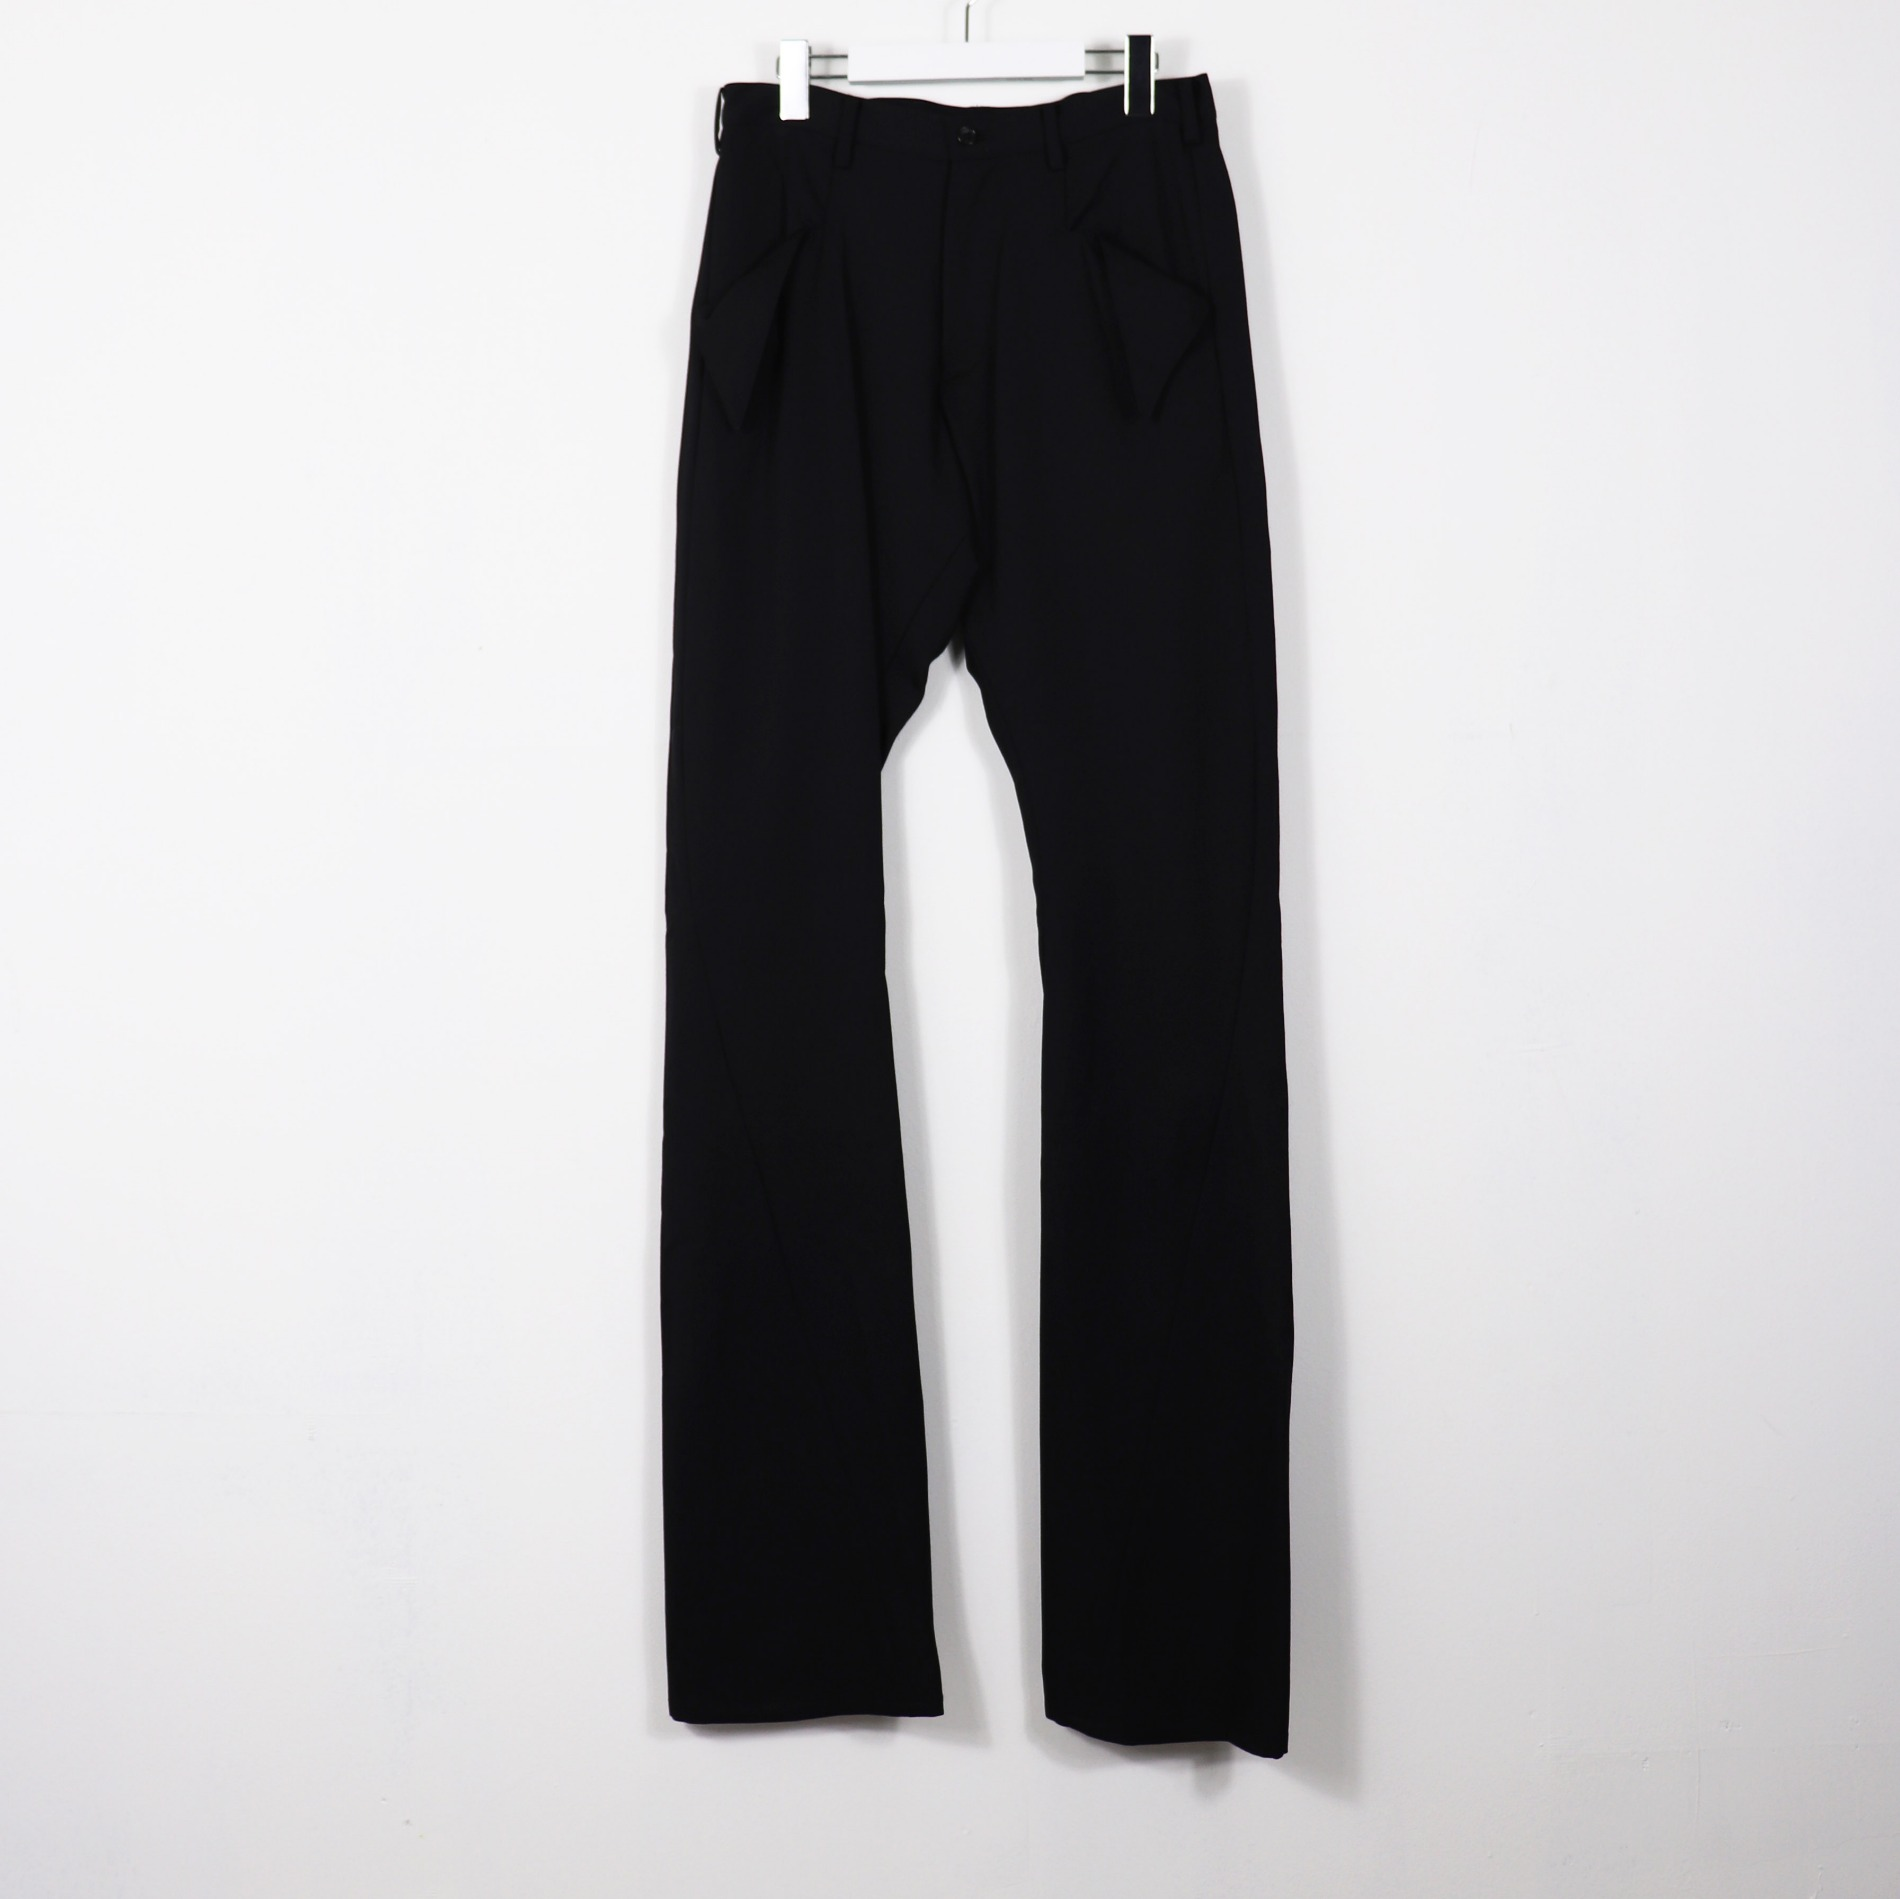 AW20 SULVAM GABARDINE BOOT CUT PANTS BLACK